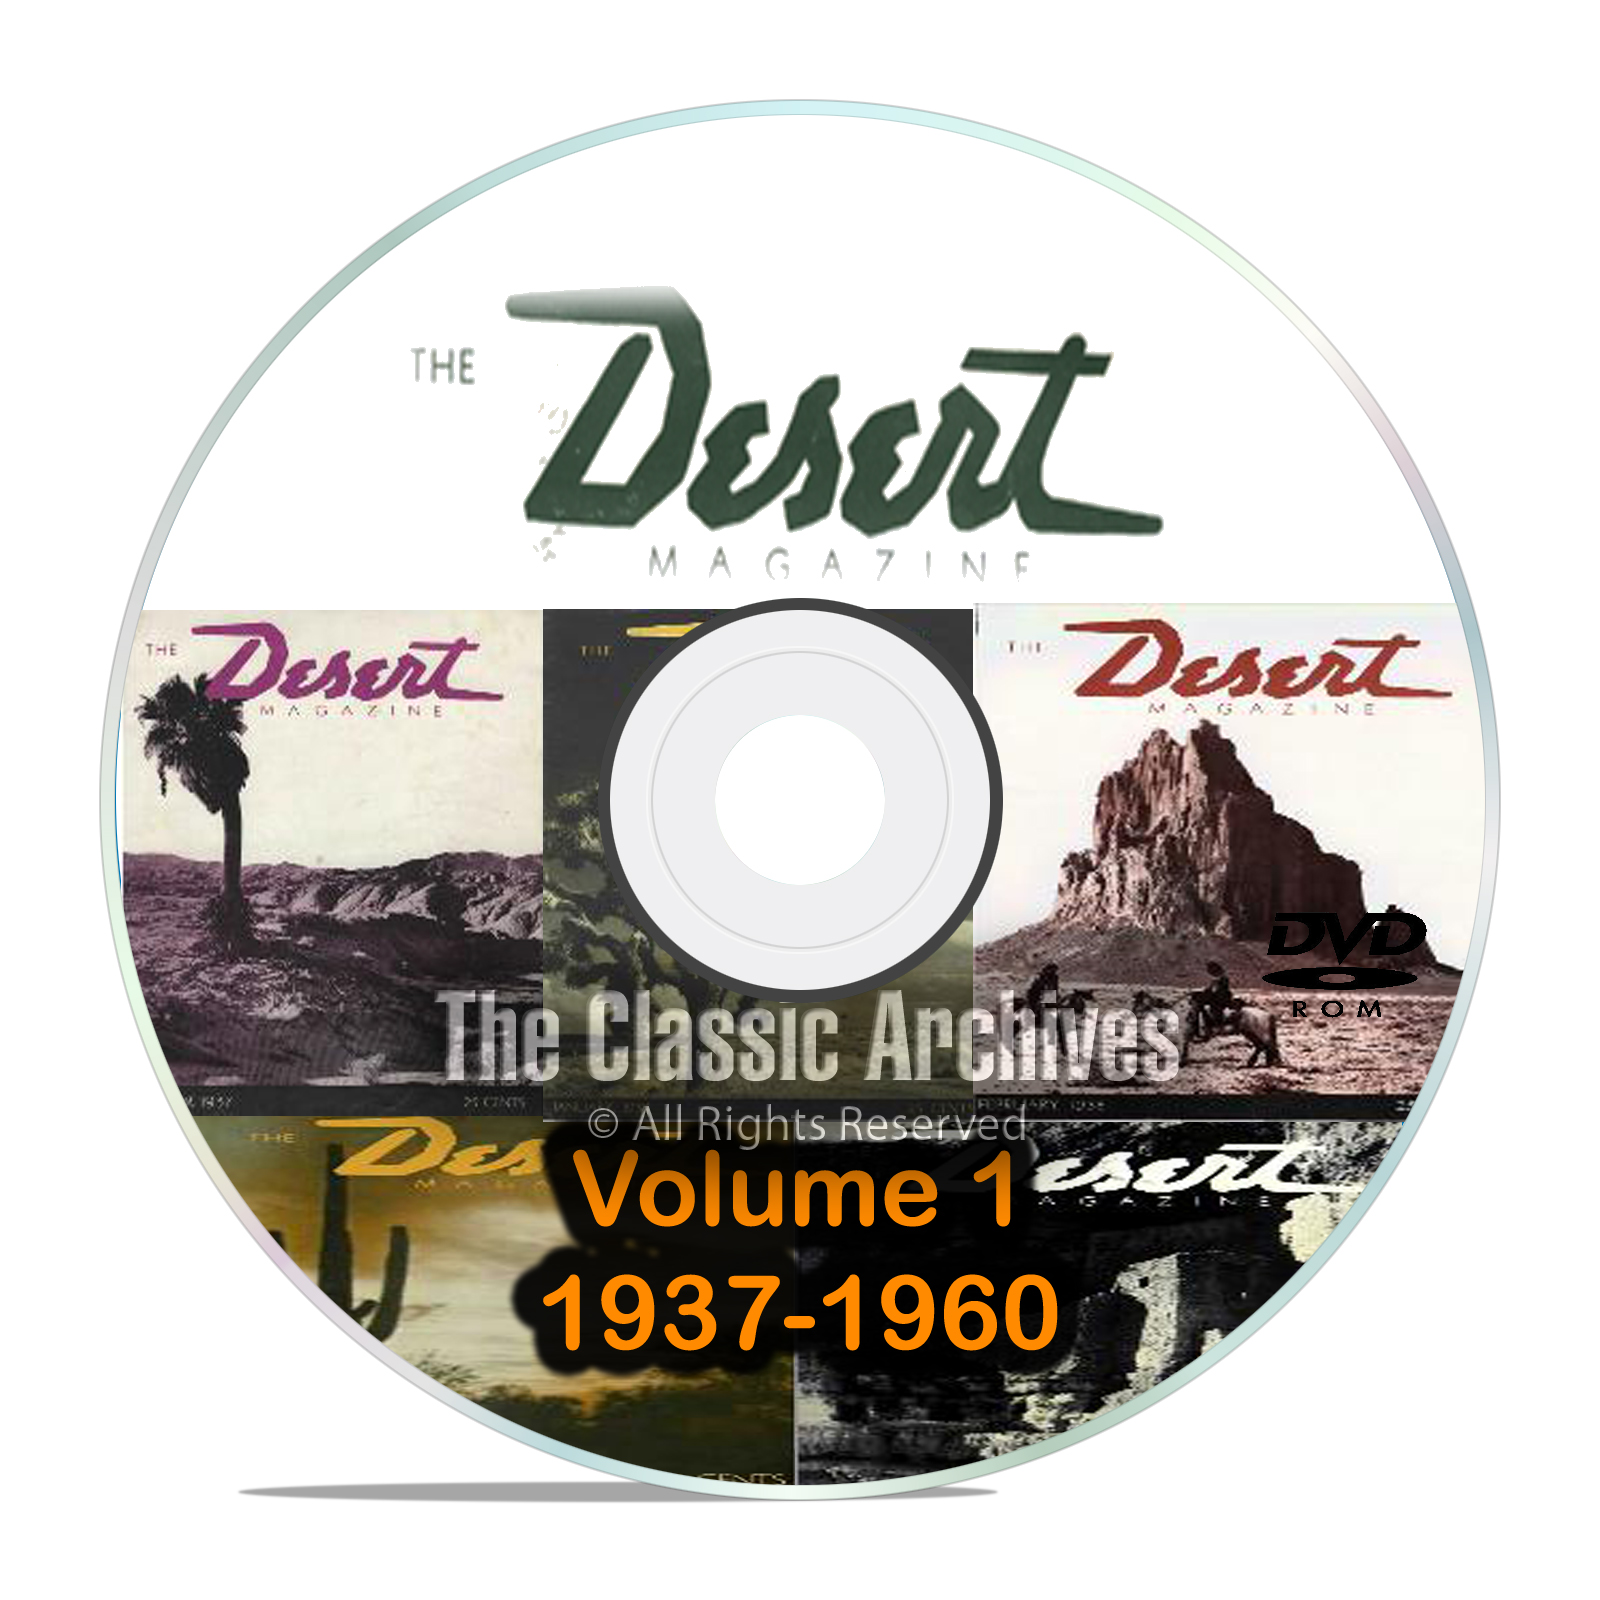 Desert Magazine, 1937-1960, Volume 1, Back Issues, Treasure Hunting DVD